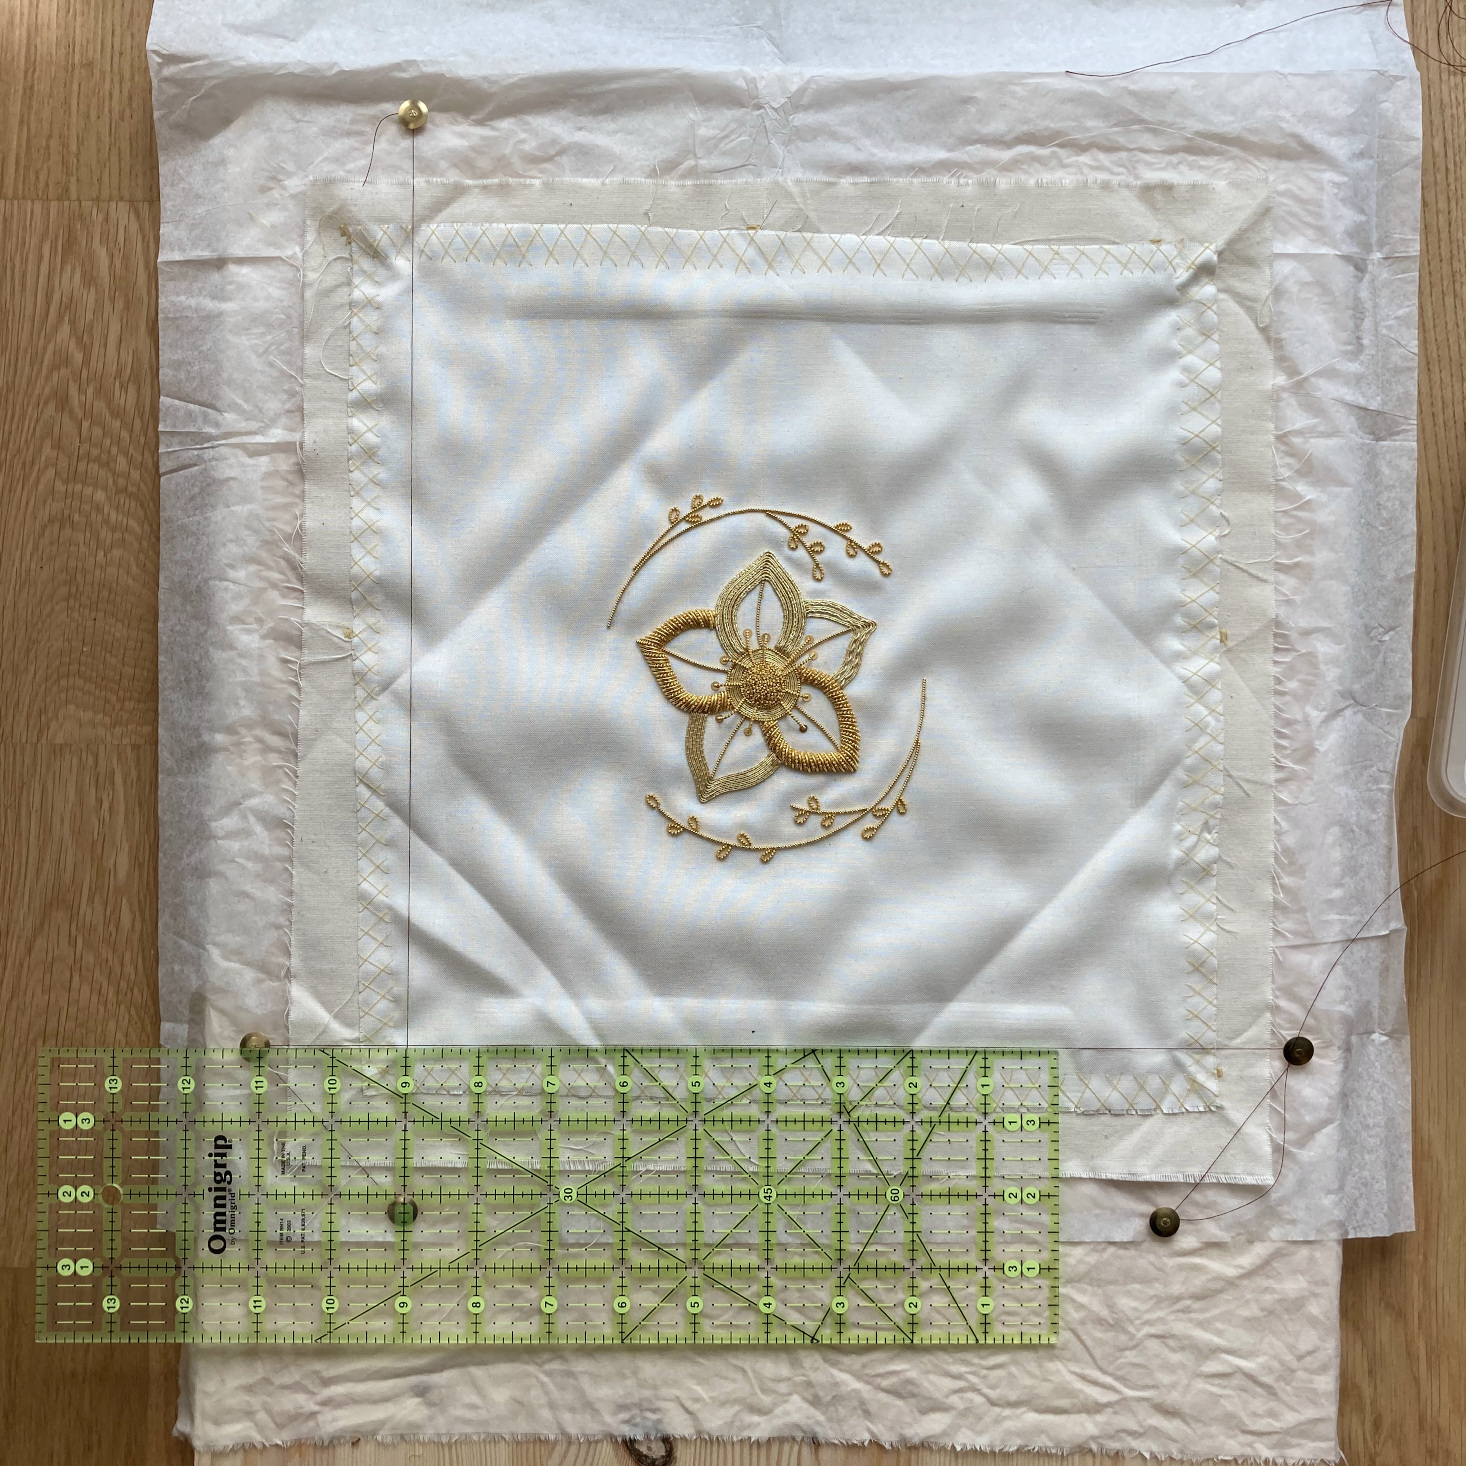 How to hold the ruler to square out the thread frame.